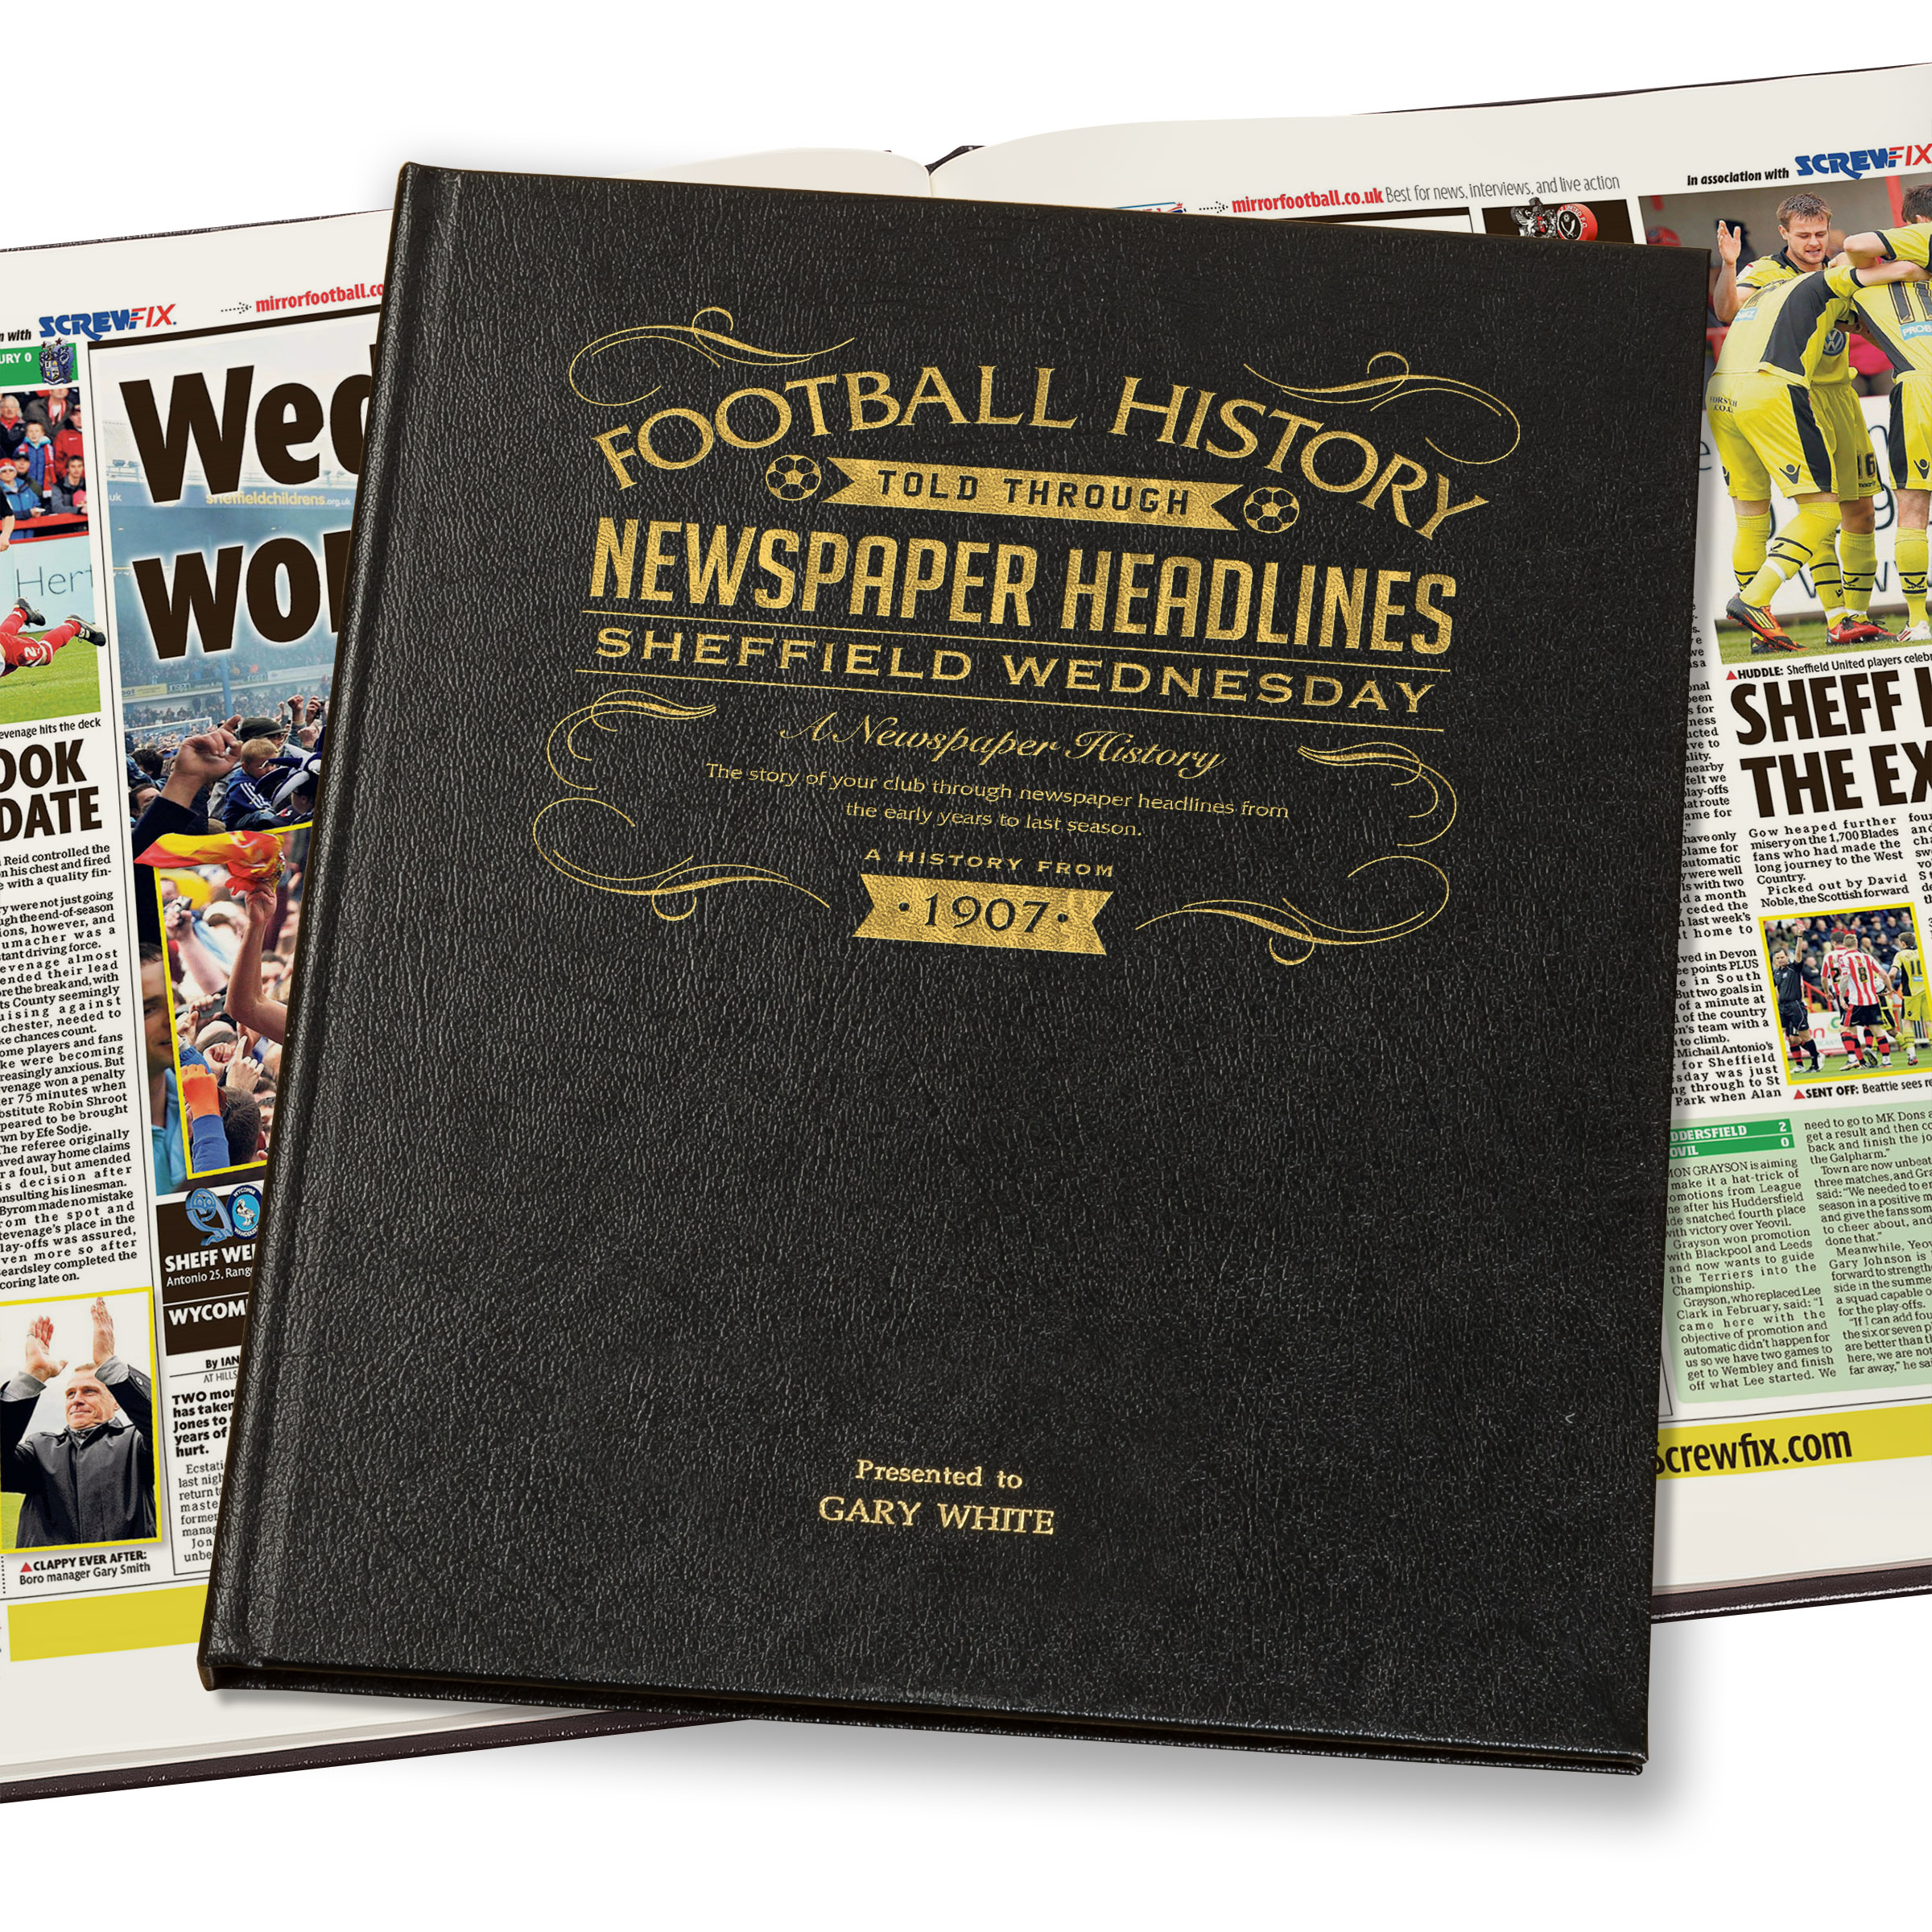 Sheffield Wednesday Newspaper Book - Leather Black Cover